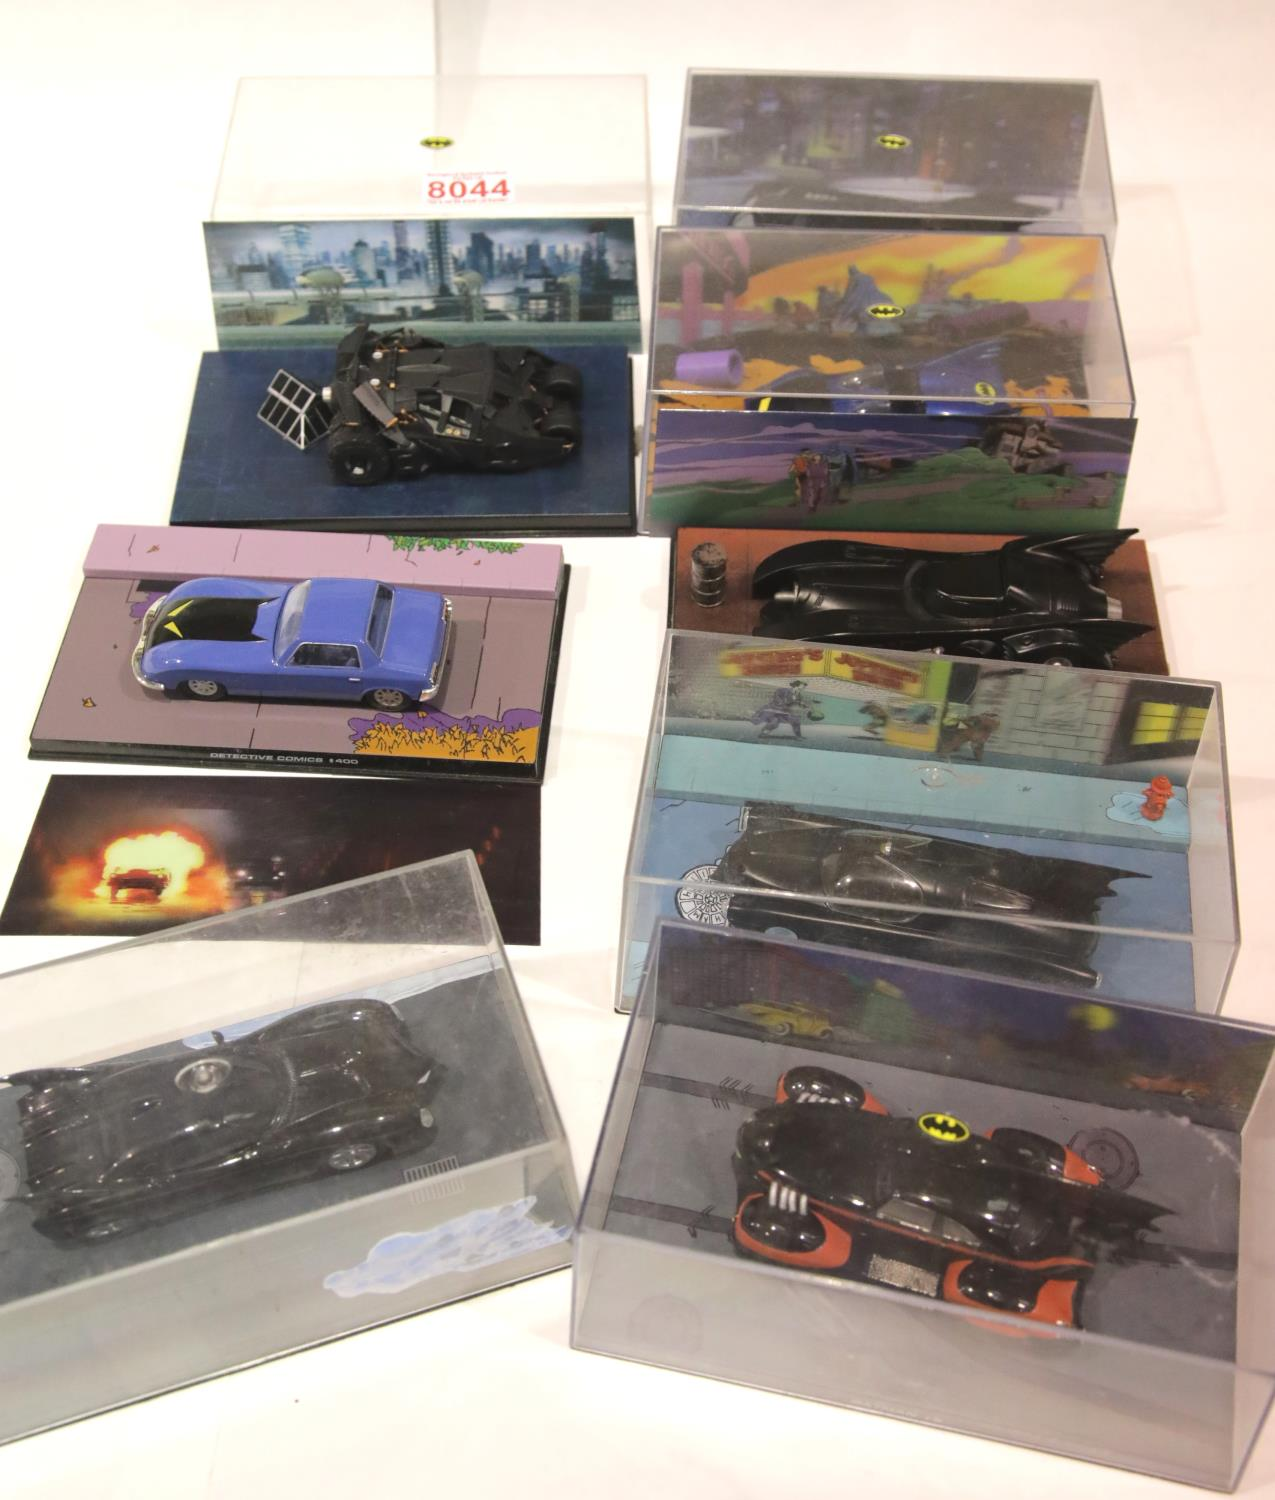 Eight Detective comics Batmobile models in original boxes. P&P Group 2 (£18+VAT for the first lot